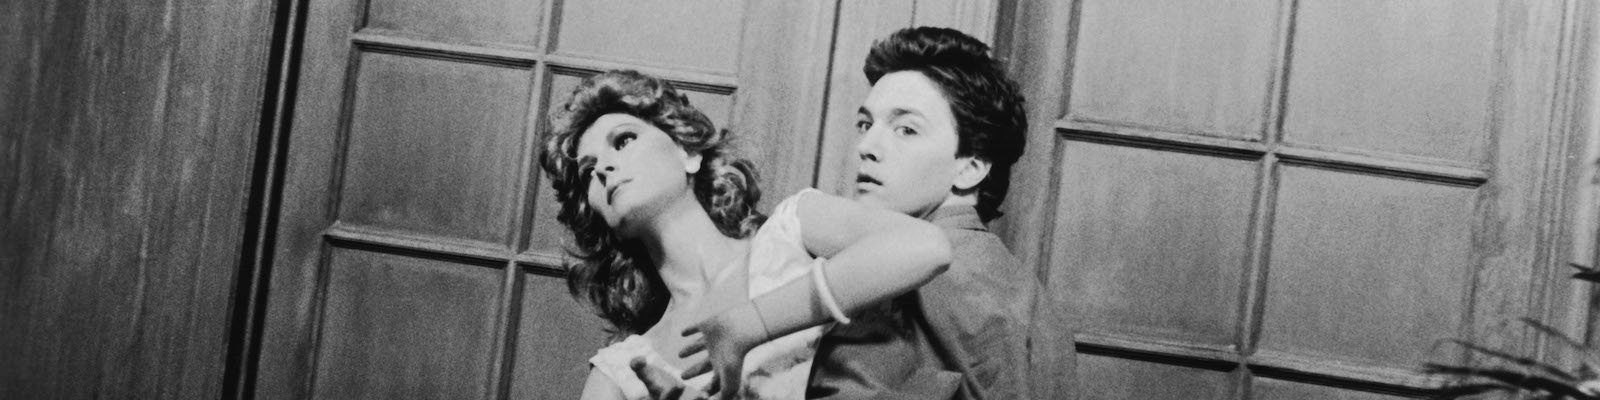 Andrew McCarthy carries a mannequin in a black and white still photo from the film Mannequin (1987)